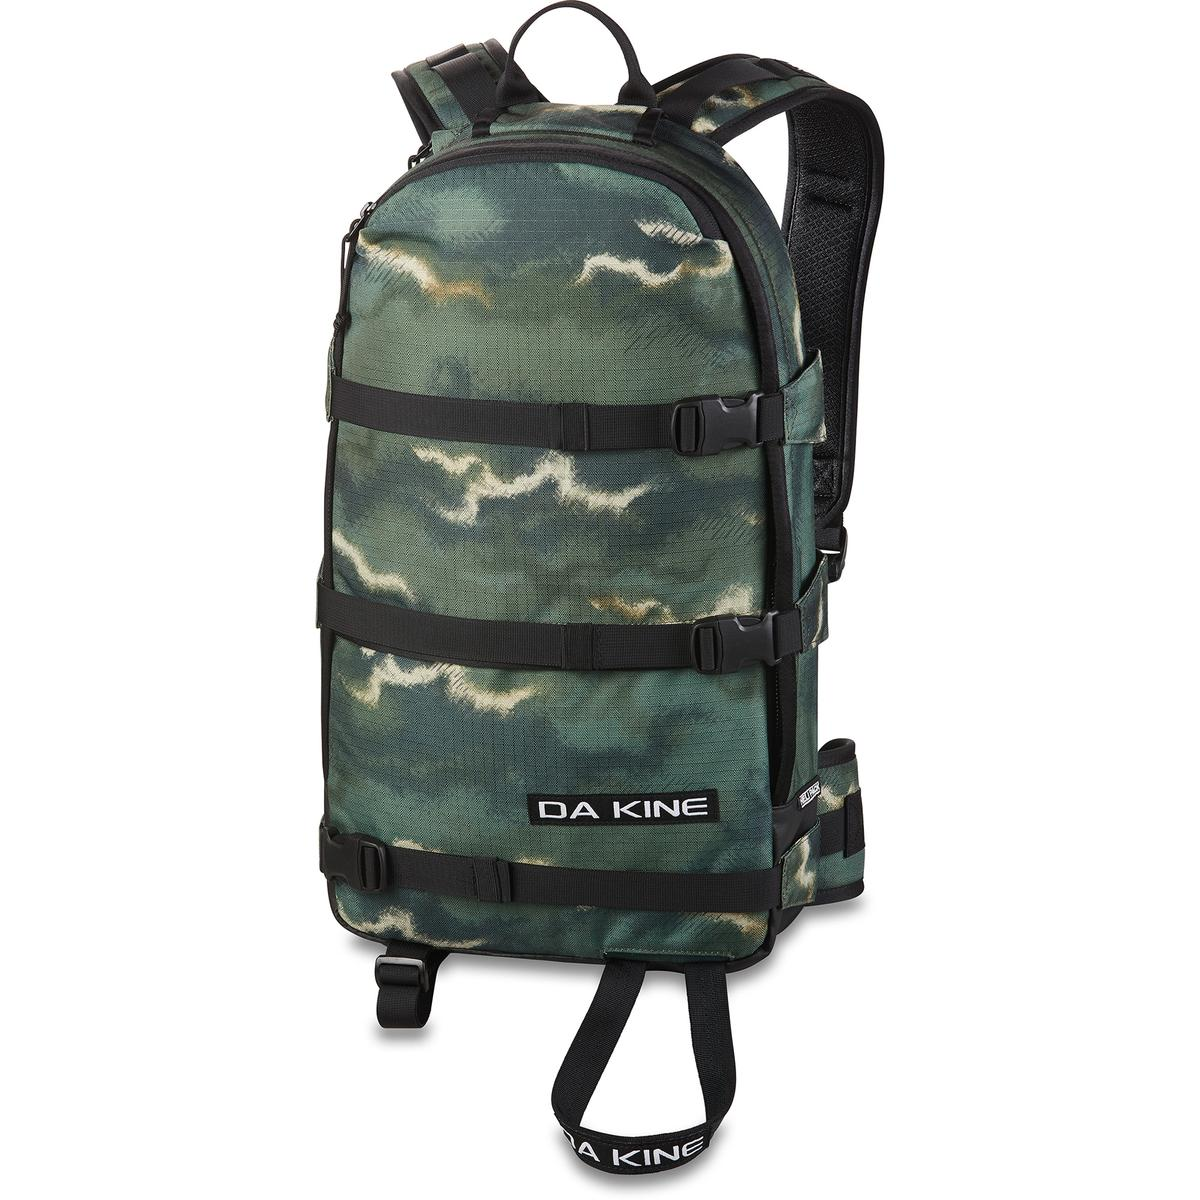 Dakine 96' Heli Pack 16L Backpack